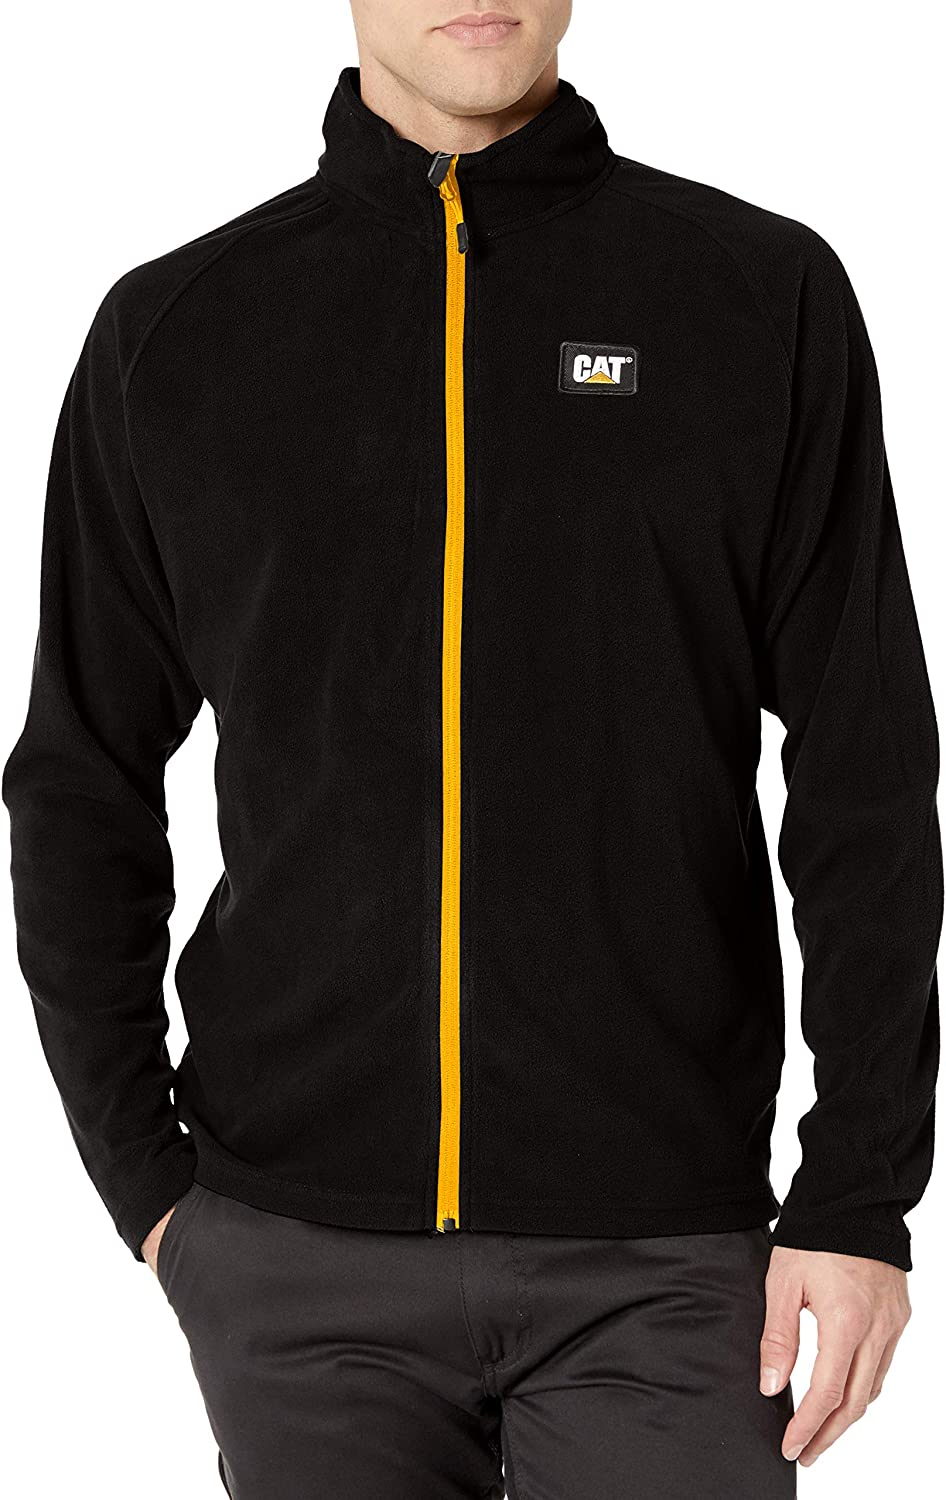 CAT Men's 1310044 Concord Fleece - All items free shipping Jacket Los Angeles Mall XXXX-Large Black